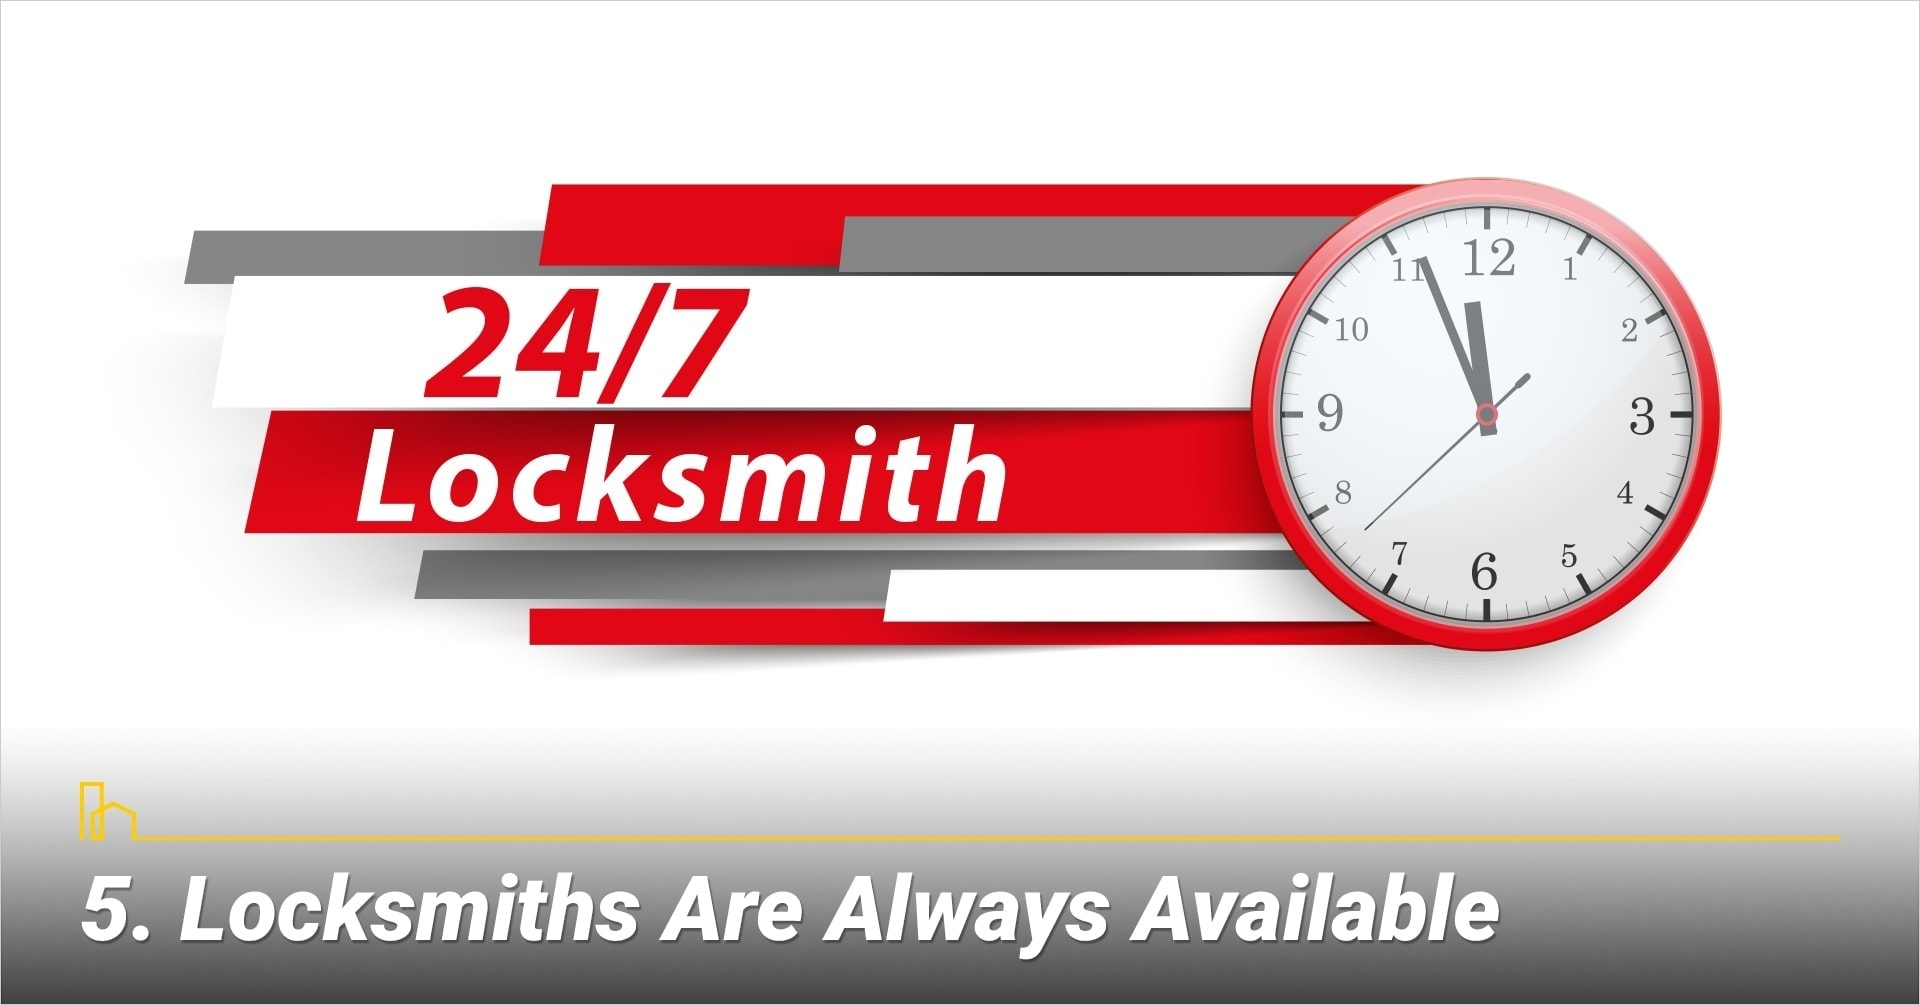 Locksmiths Are Always Available, they are available 24/7